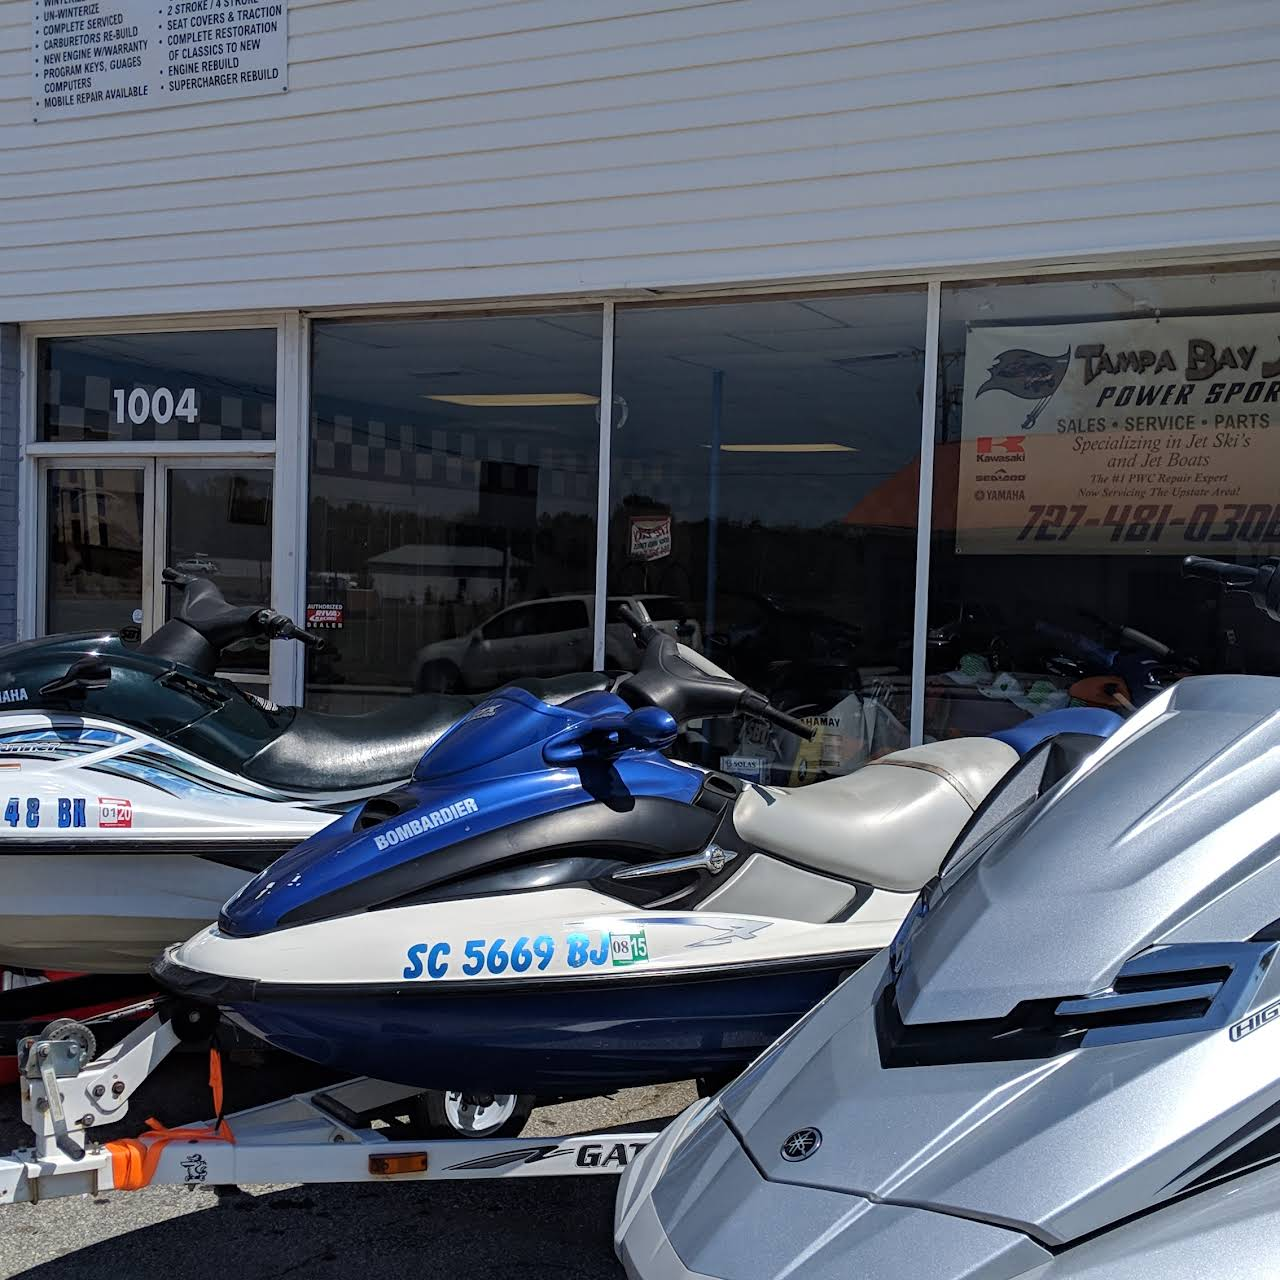 Tampa Bay Jays Powersports - Jet Ski Repair Shop in Seneca , S C